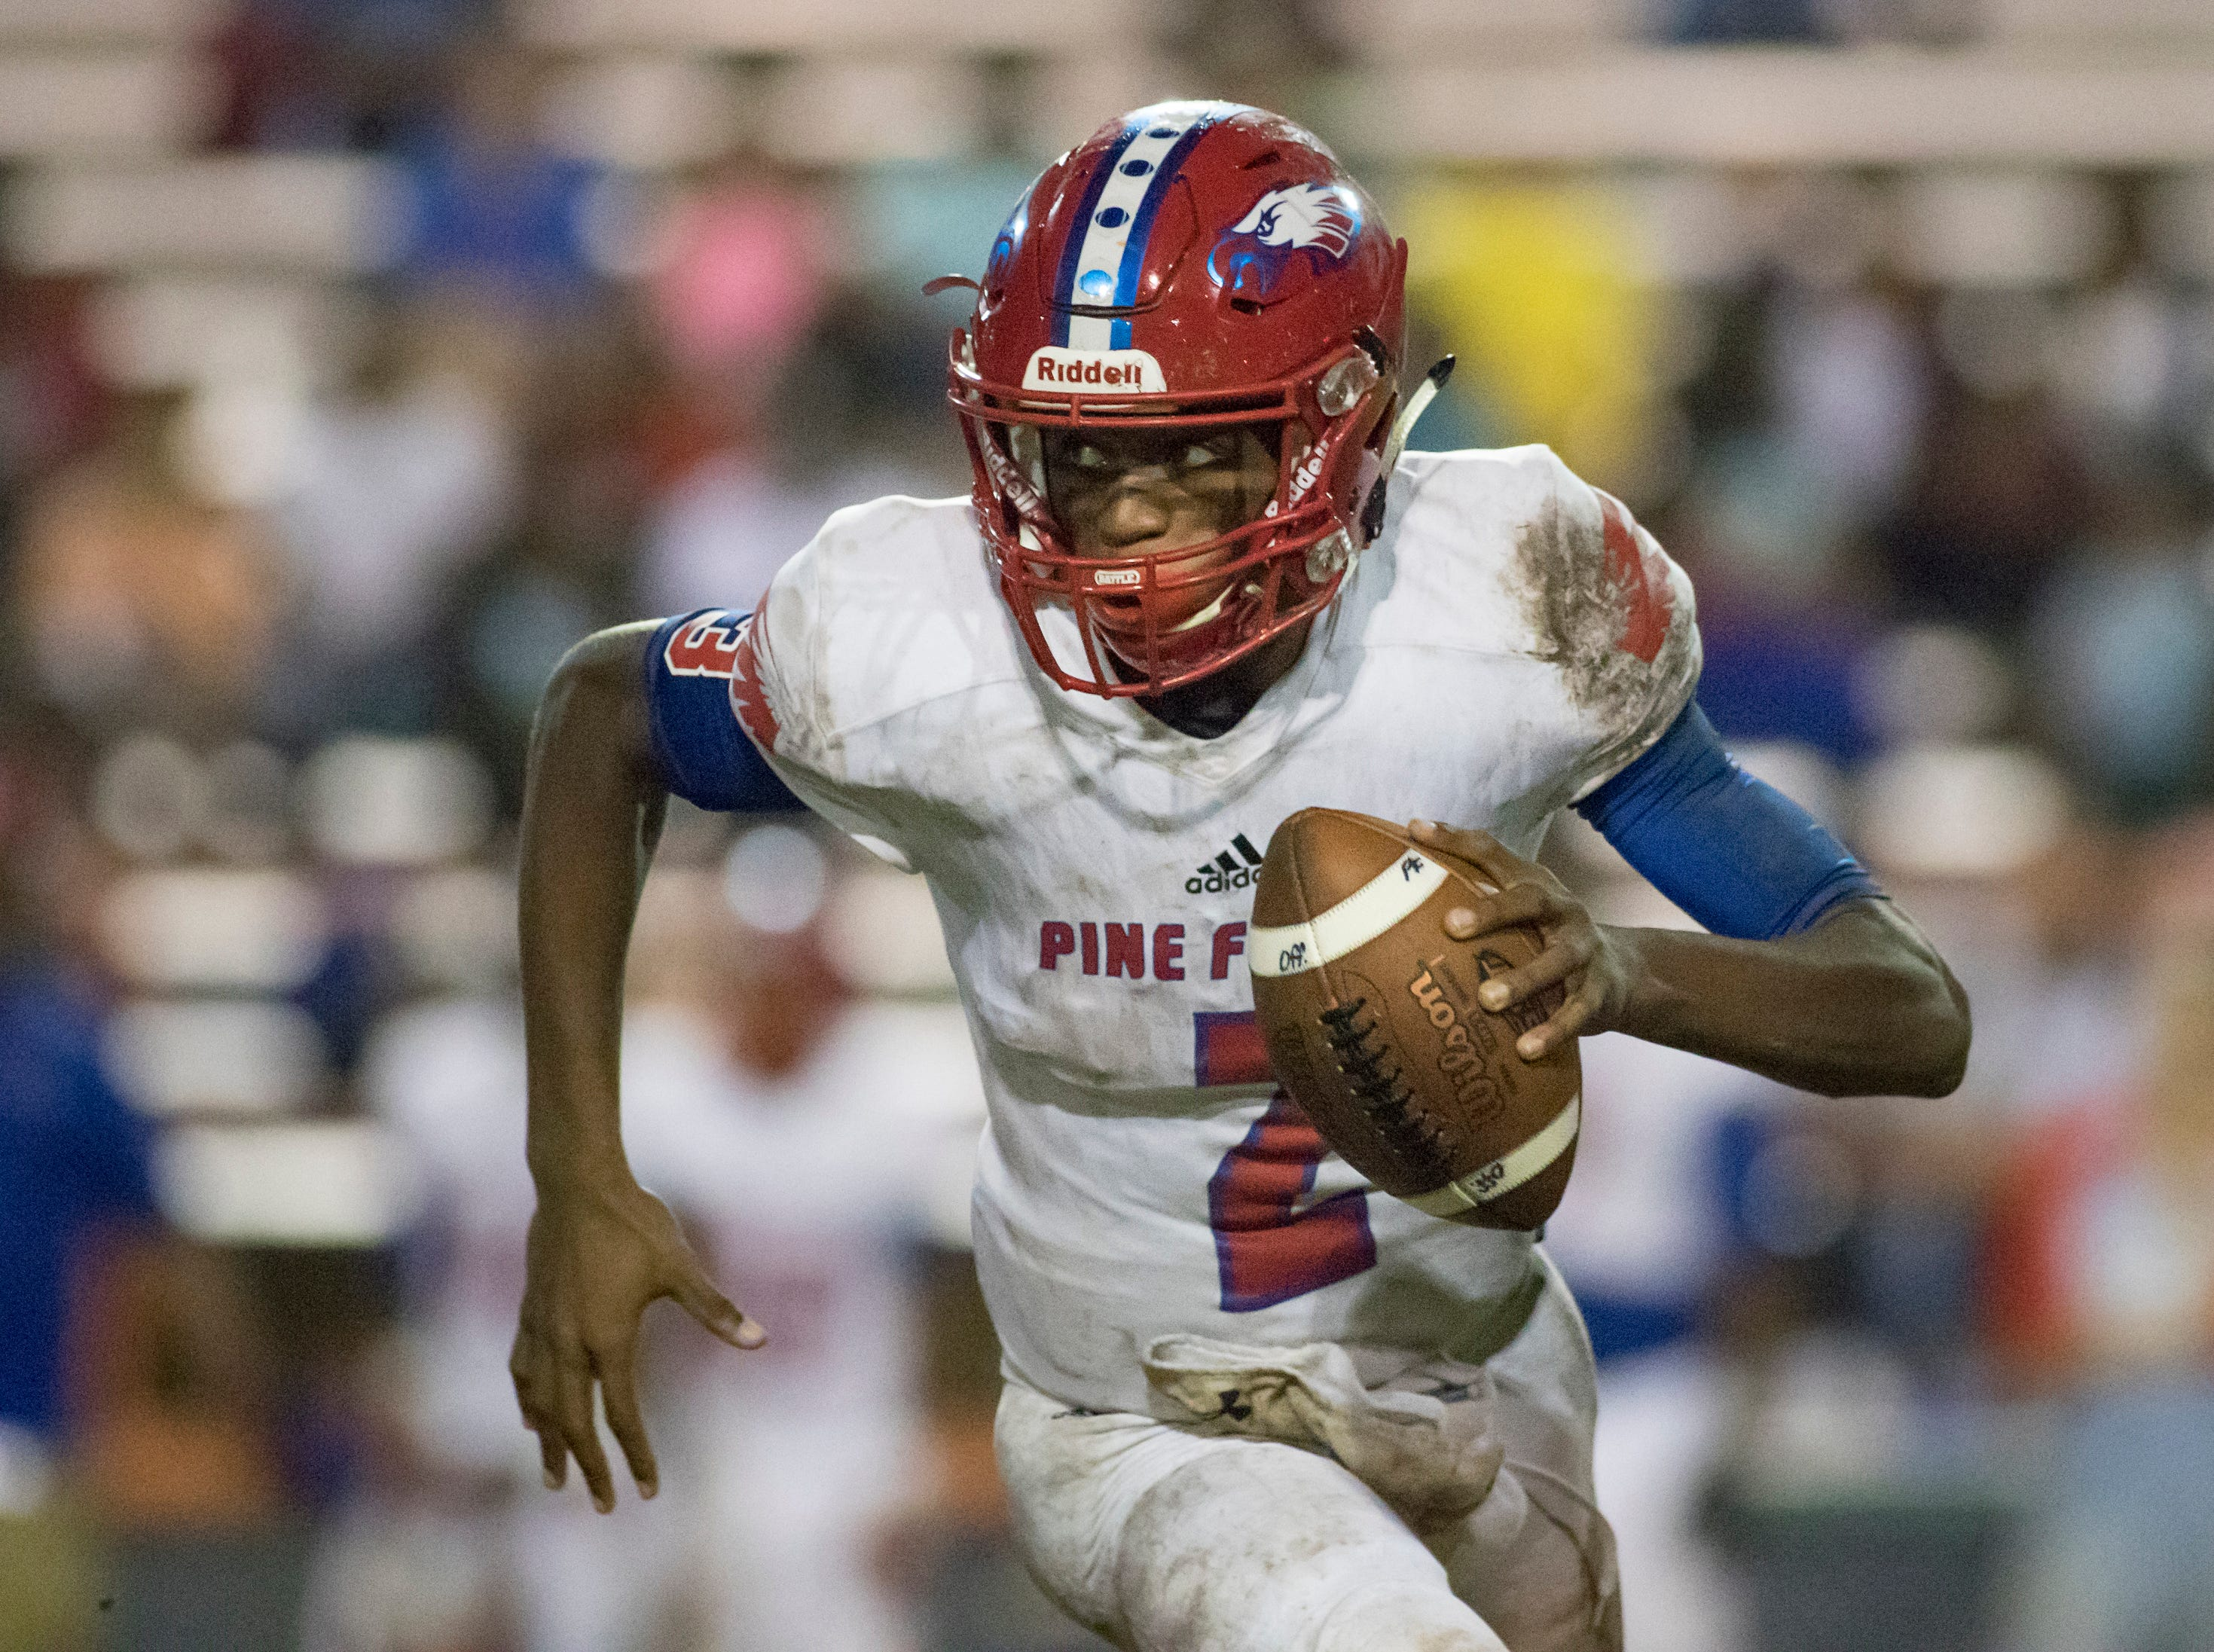 Quarterback Ladarius Clardy (2) keeps the ball during the Pine Forest vs Escambia football game at Escambia High School in Pensacola on Friday, September 28, 2018.